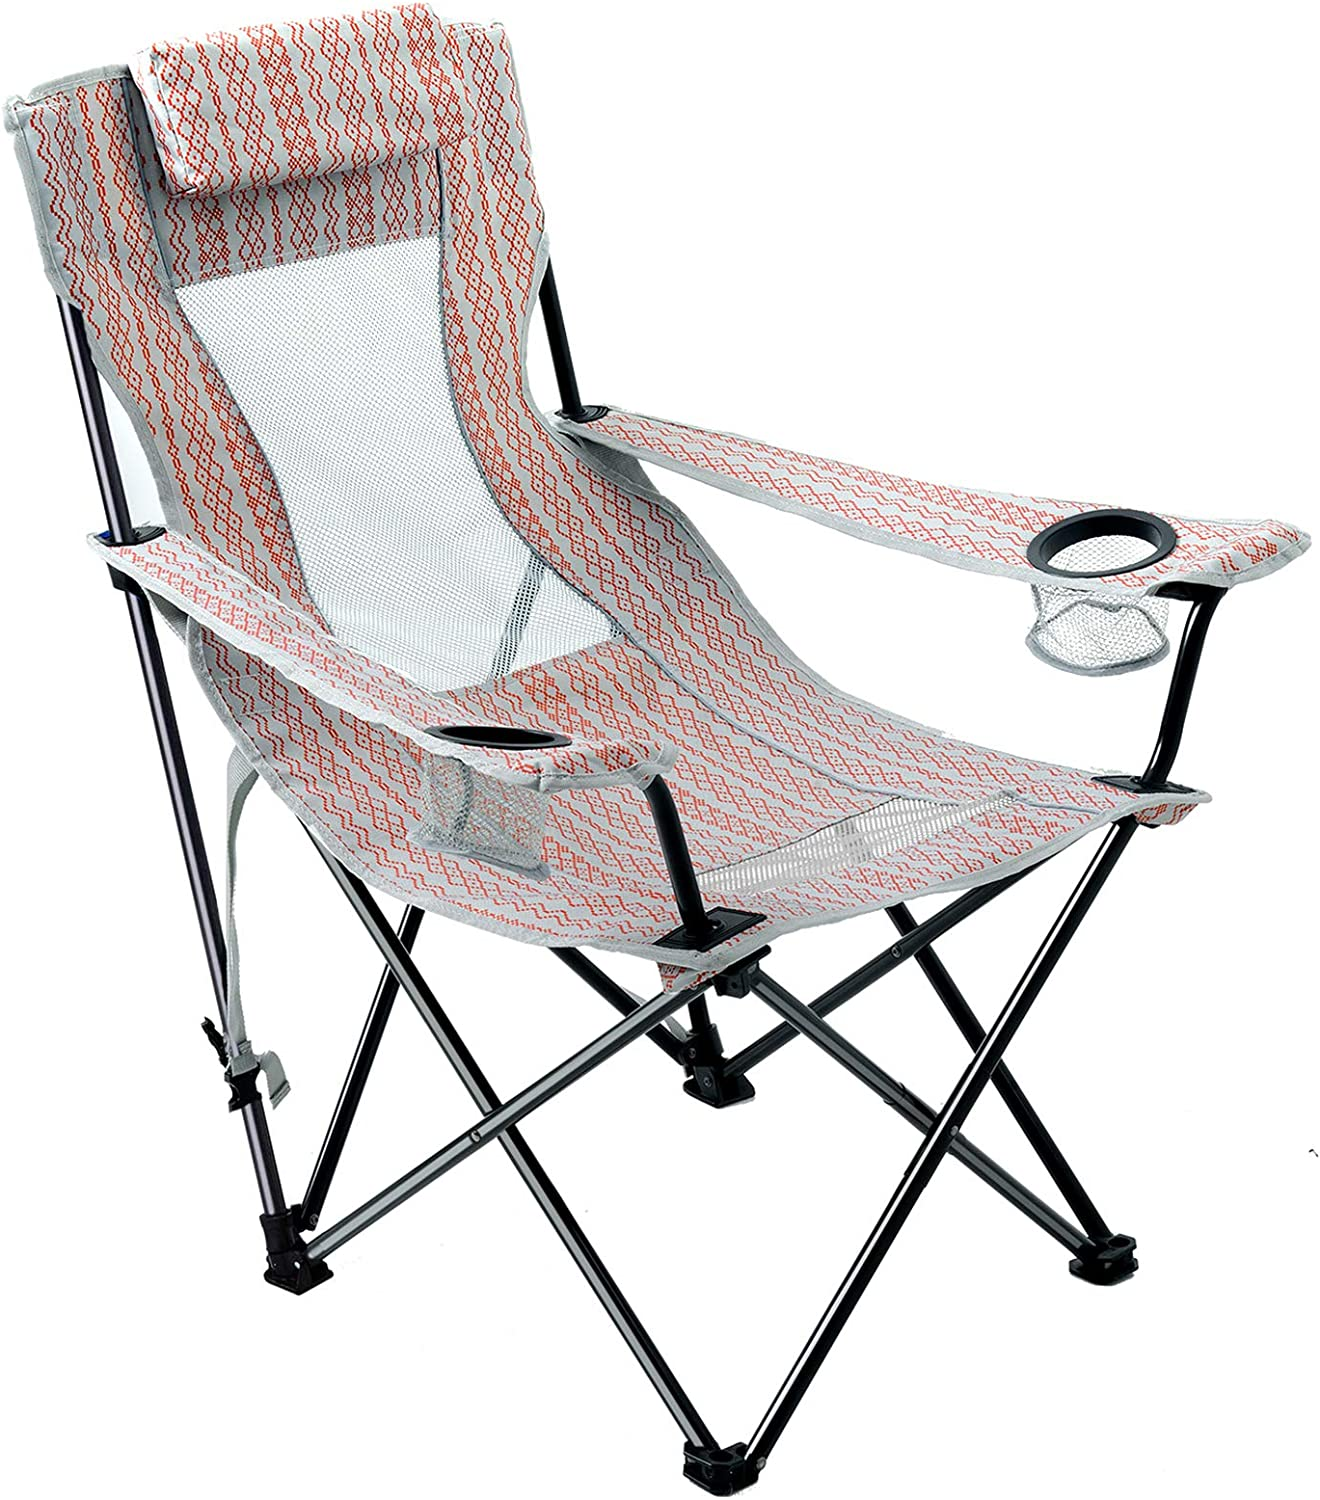 Reclining Oakland Mall Beach Chair with Portable Backpack Lightweight Straps Today's only